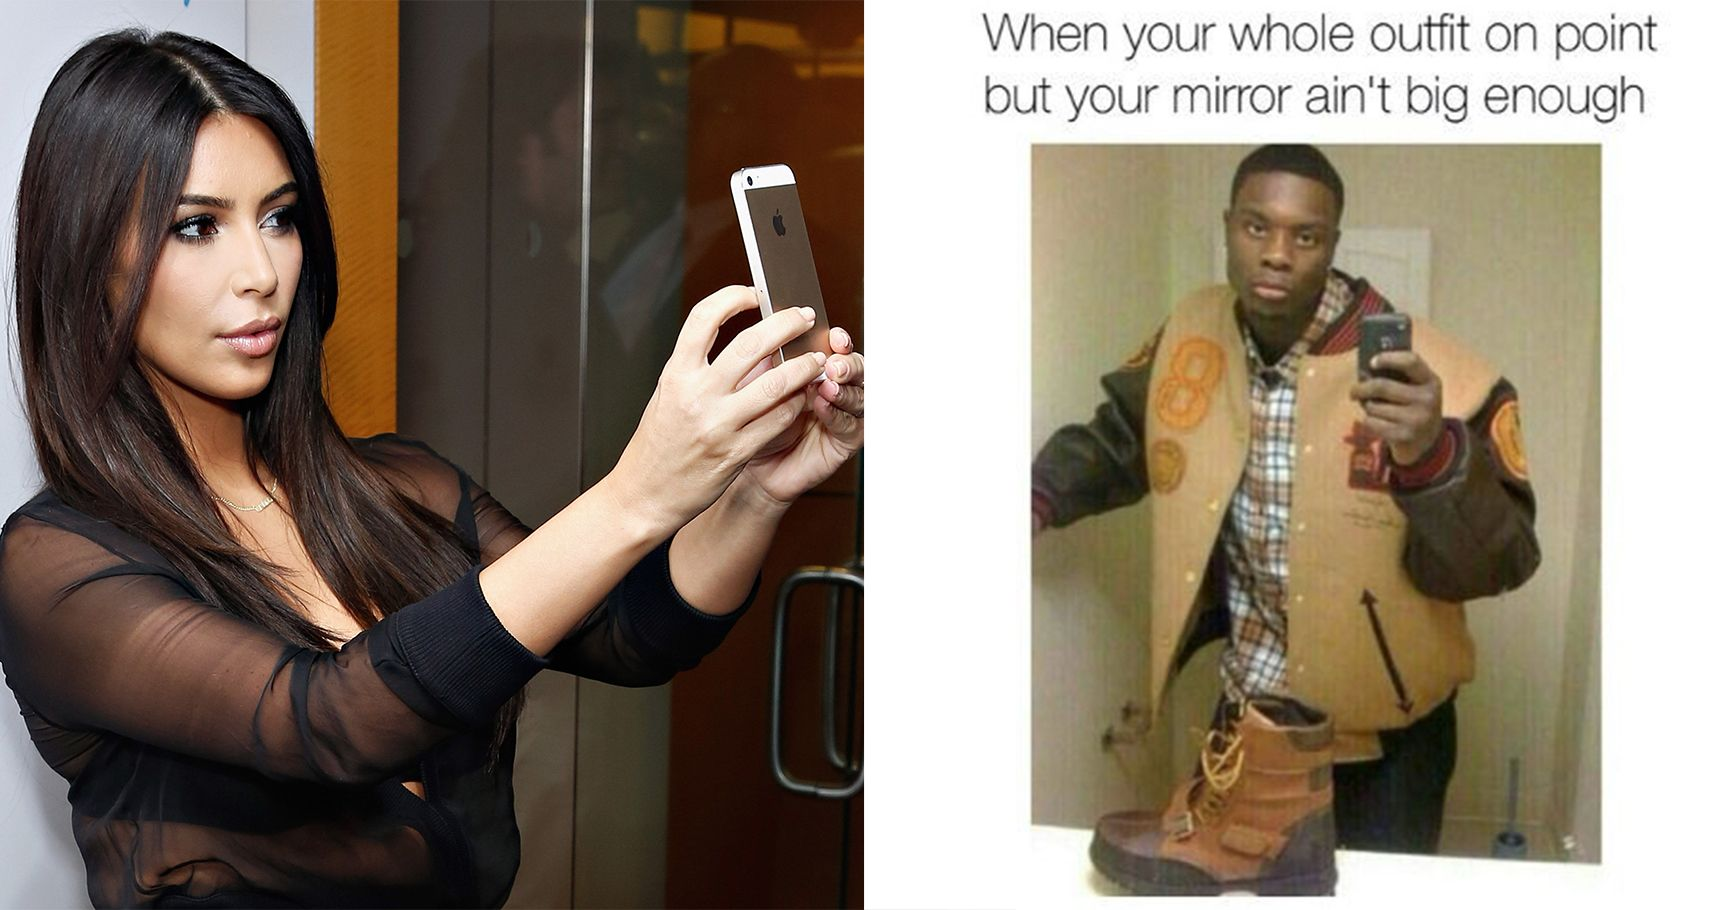 15 Annoying Problems We All Face While Trying To Take Selfies